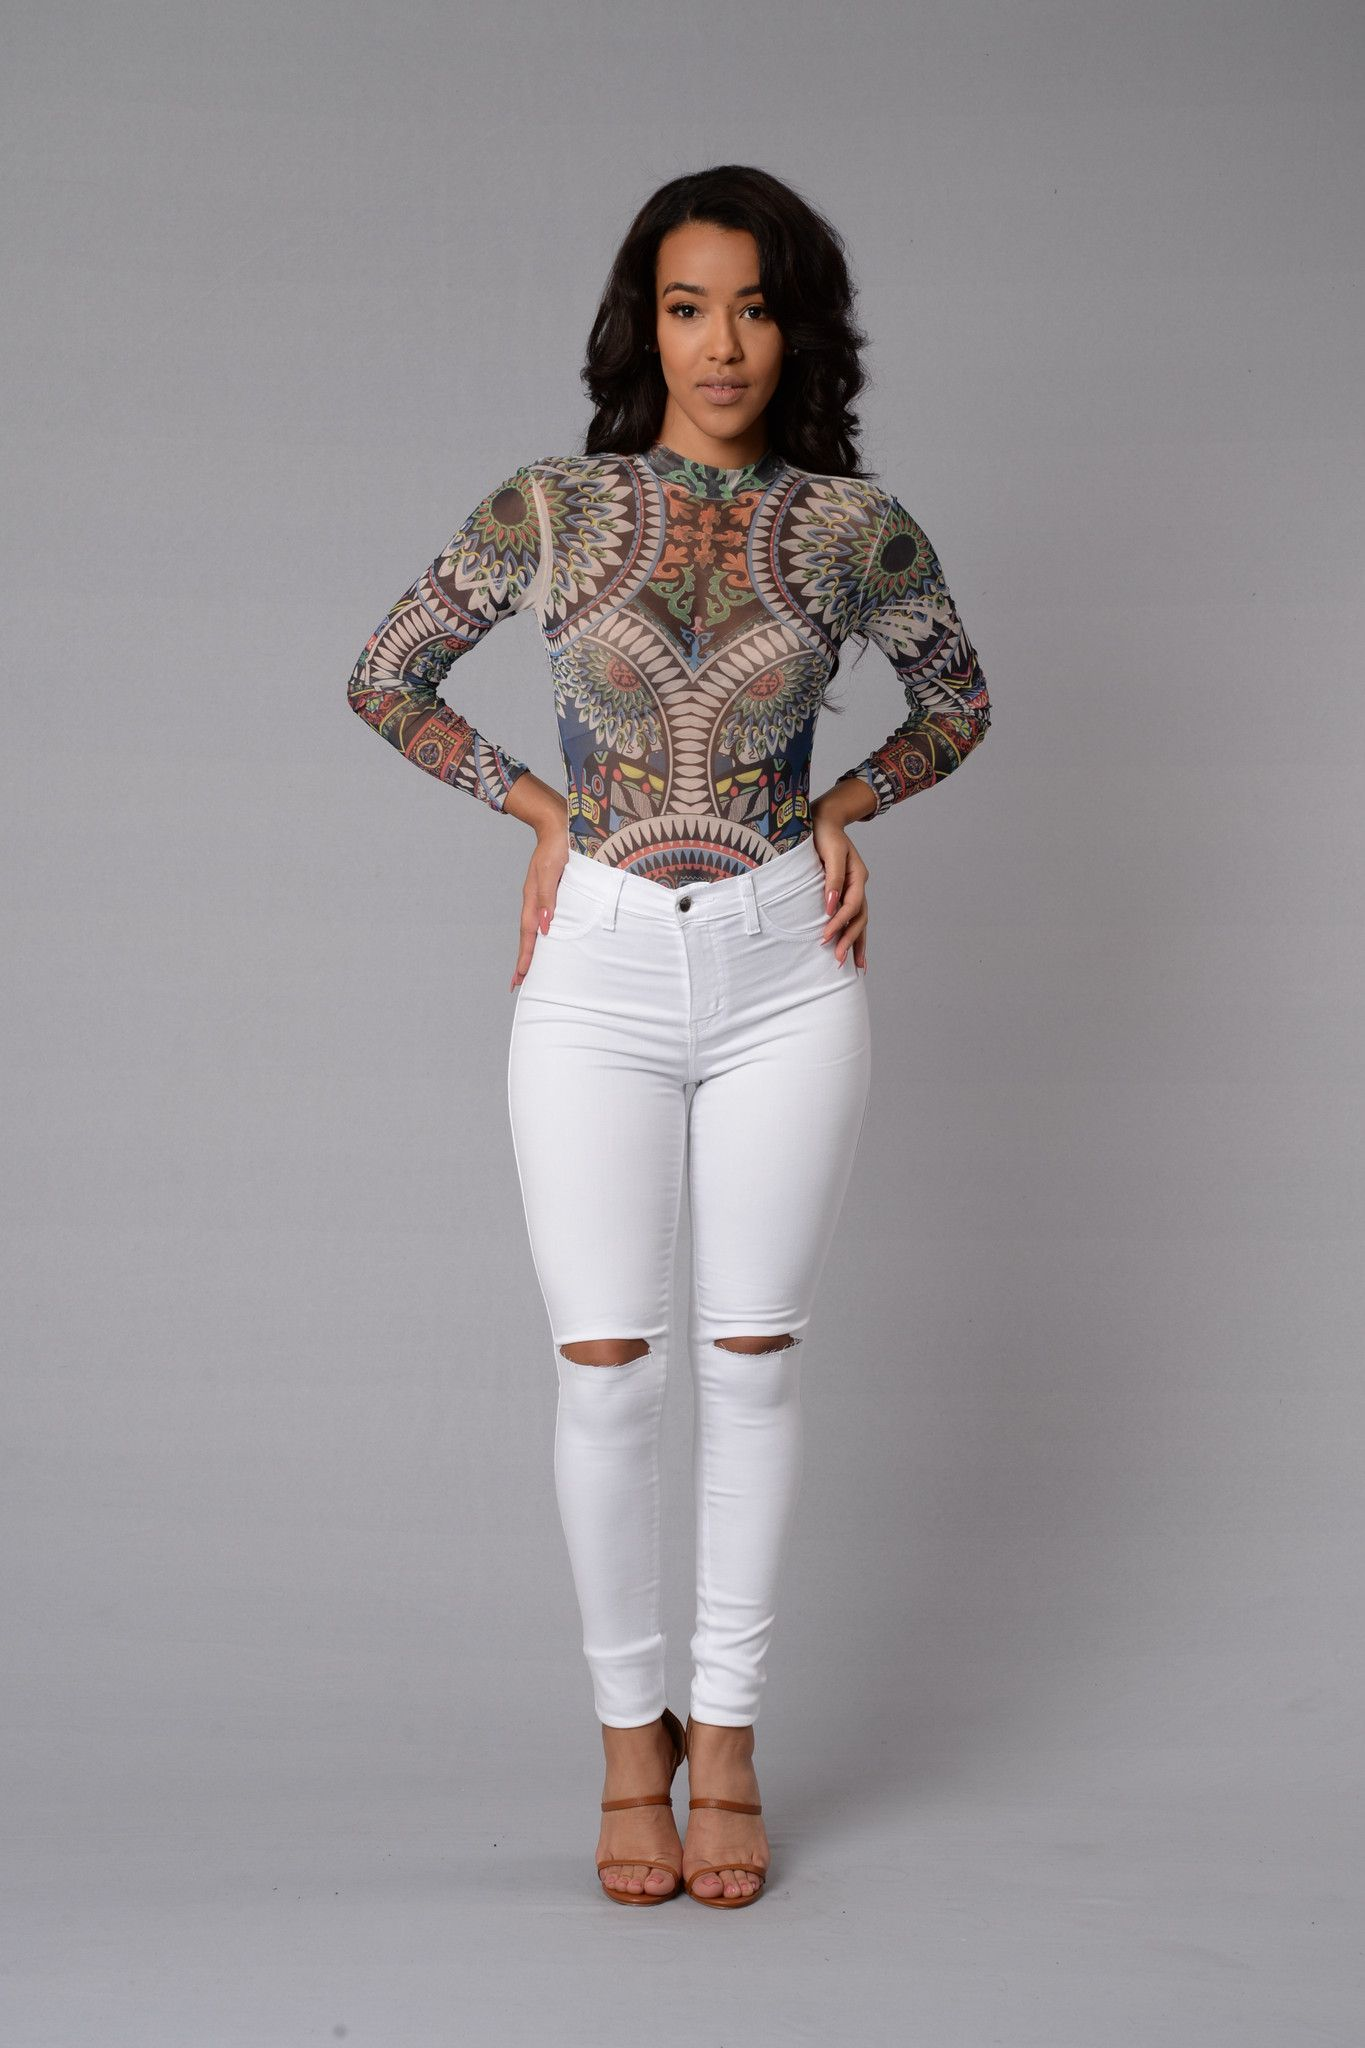 kaleidoscope bodysuit  multi  fashion outfits style